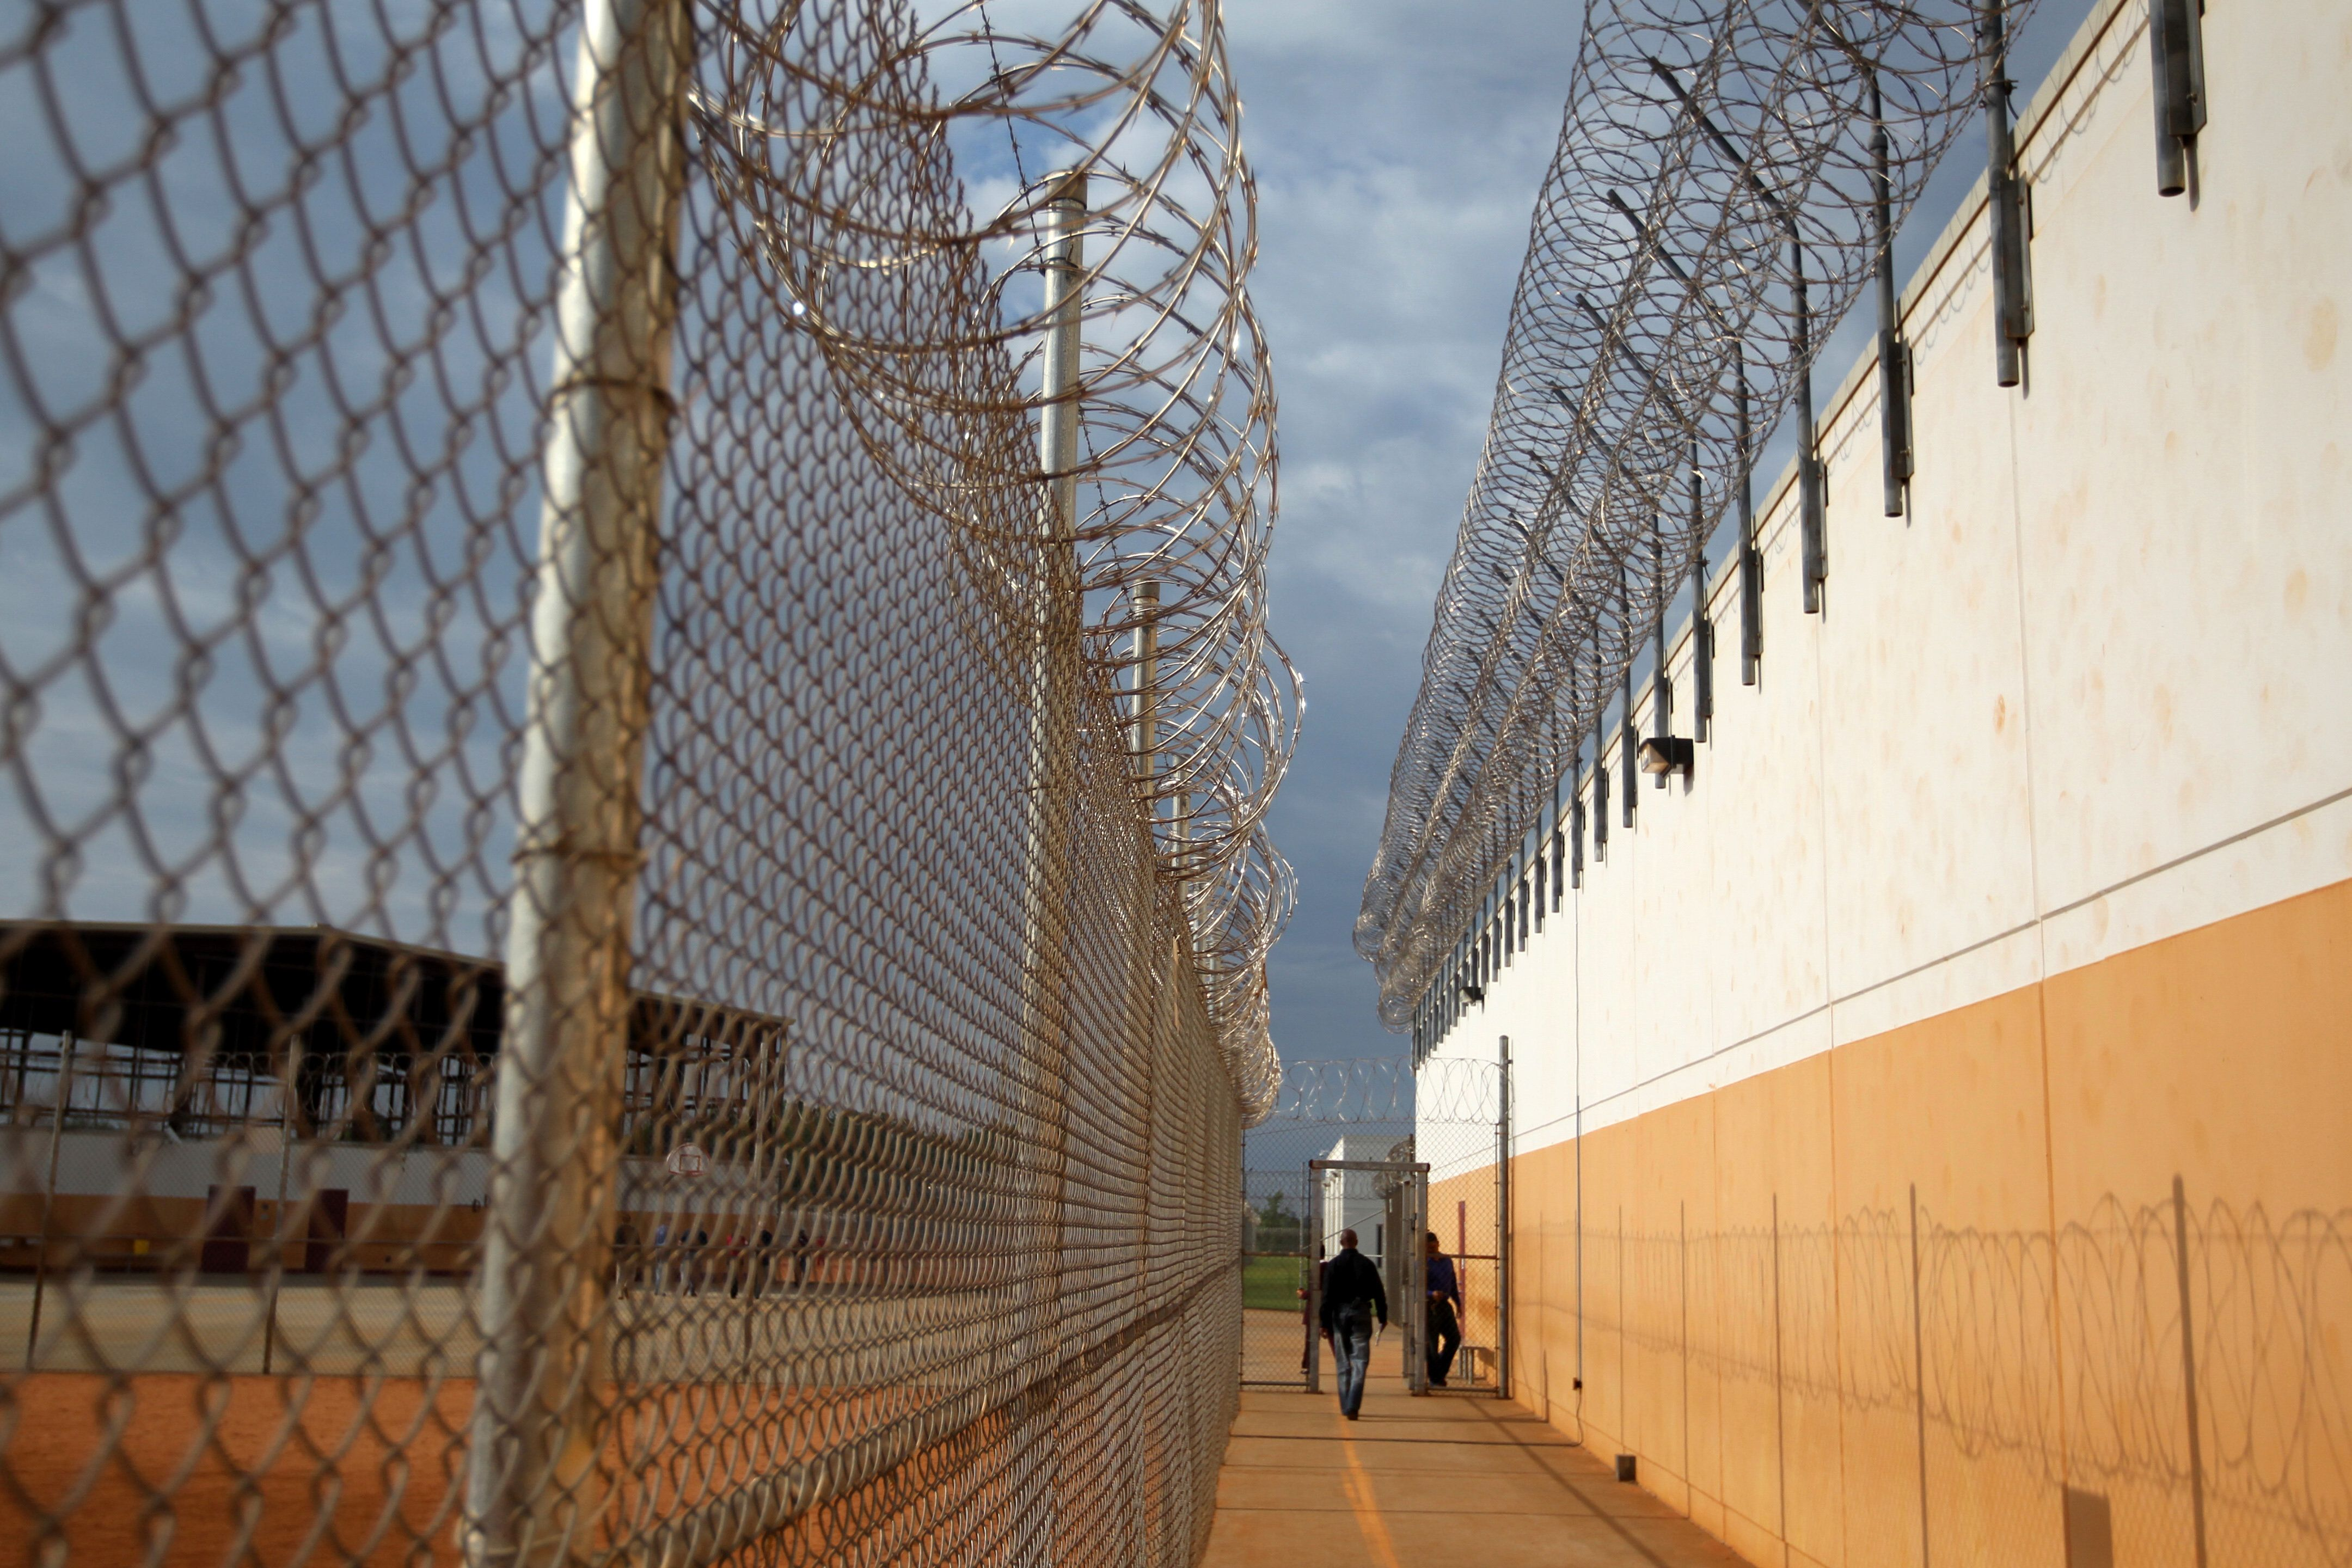 "<span class='image-component__caption' itemprop=""caption"">Detainees at Stewart Detention Center say conditions there are poor.</span>"